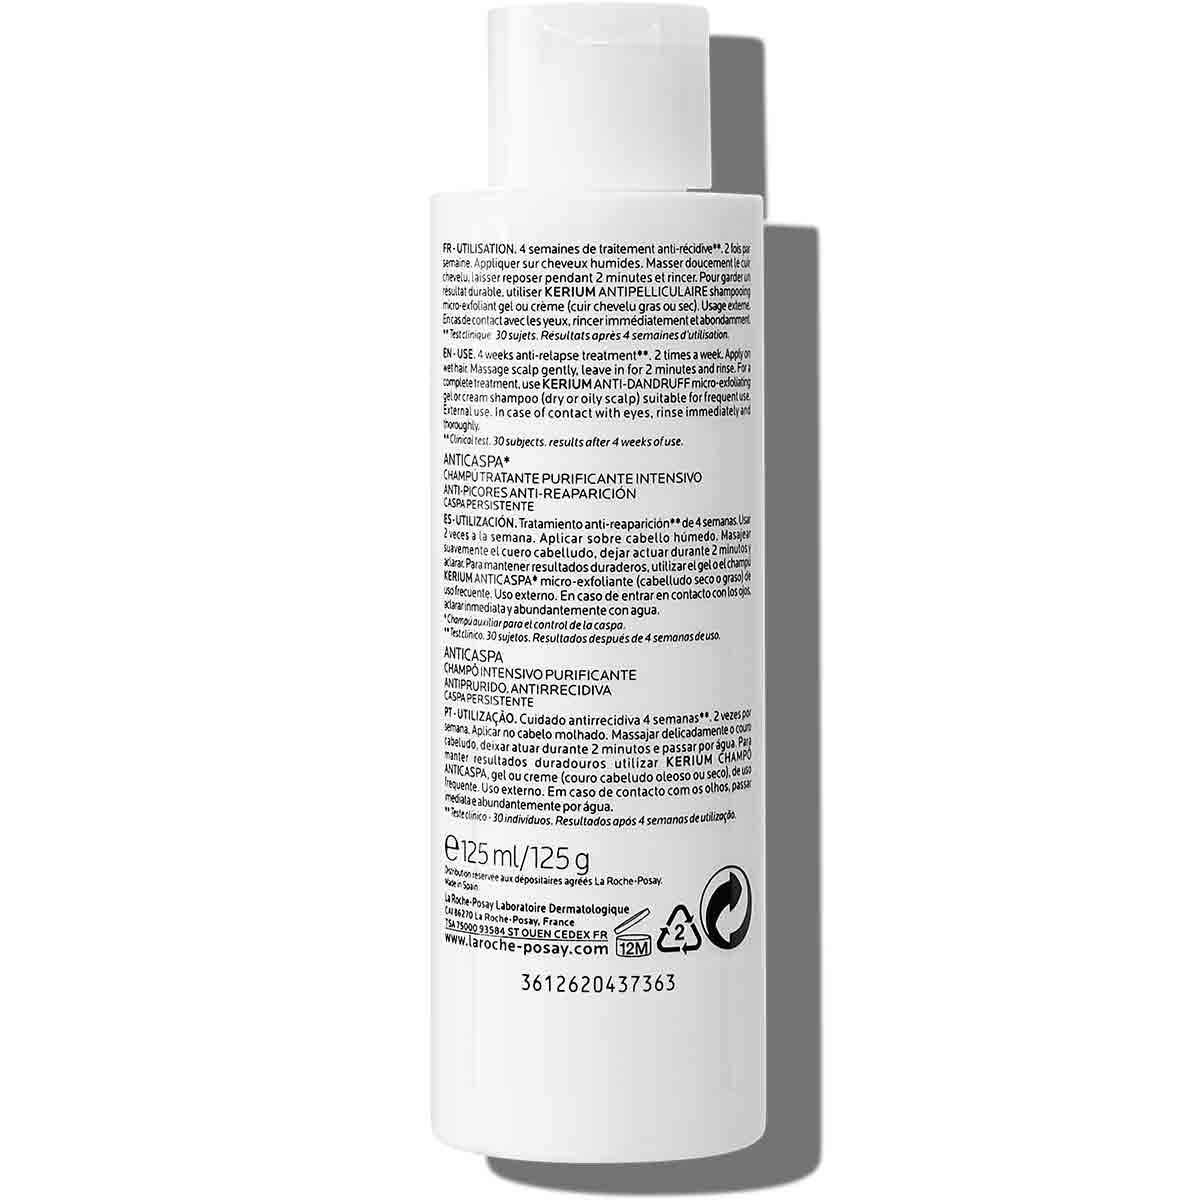 La Roche Posay ProductPage Kerium DS Anti Dandruff Treating Shampoo 12